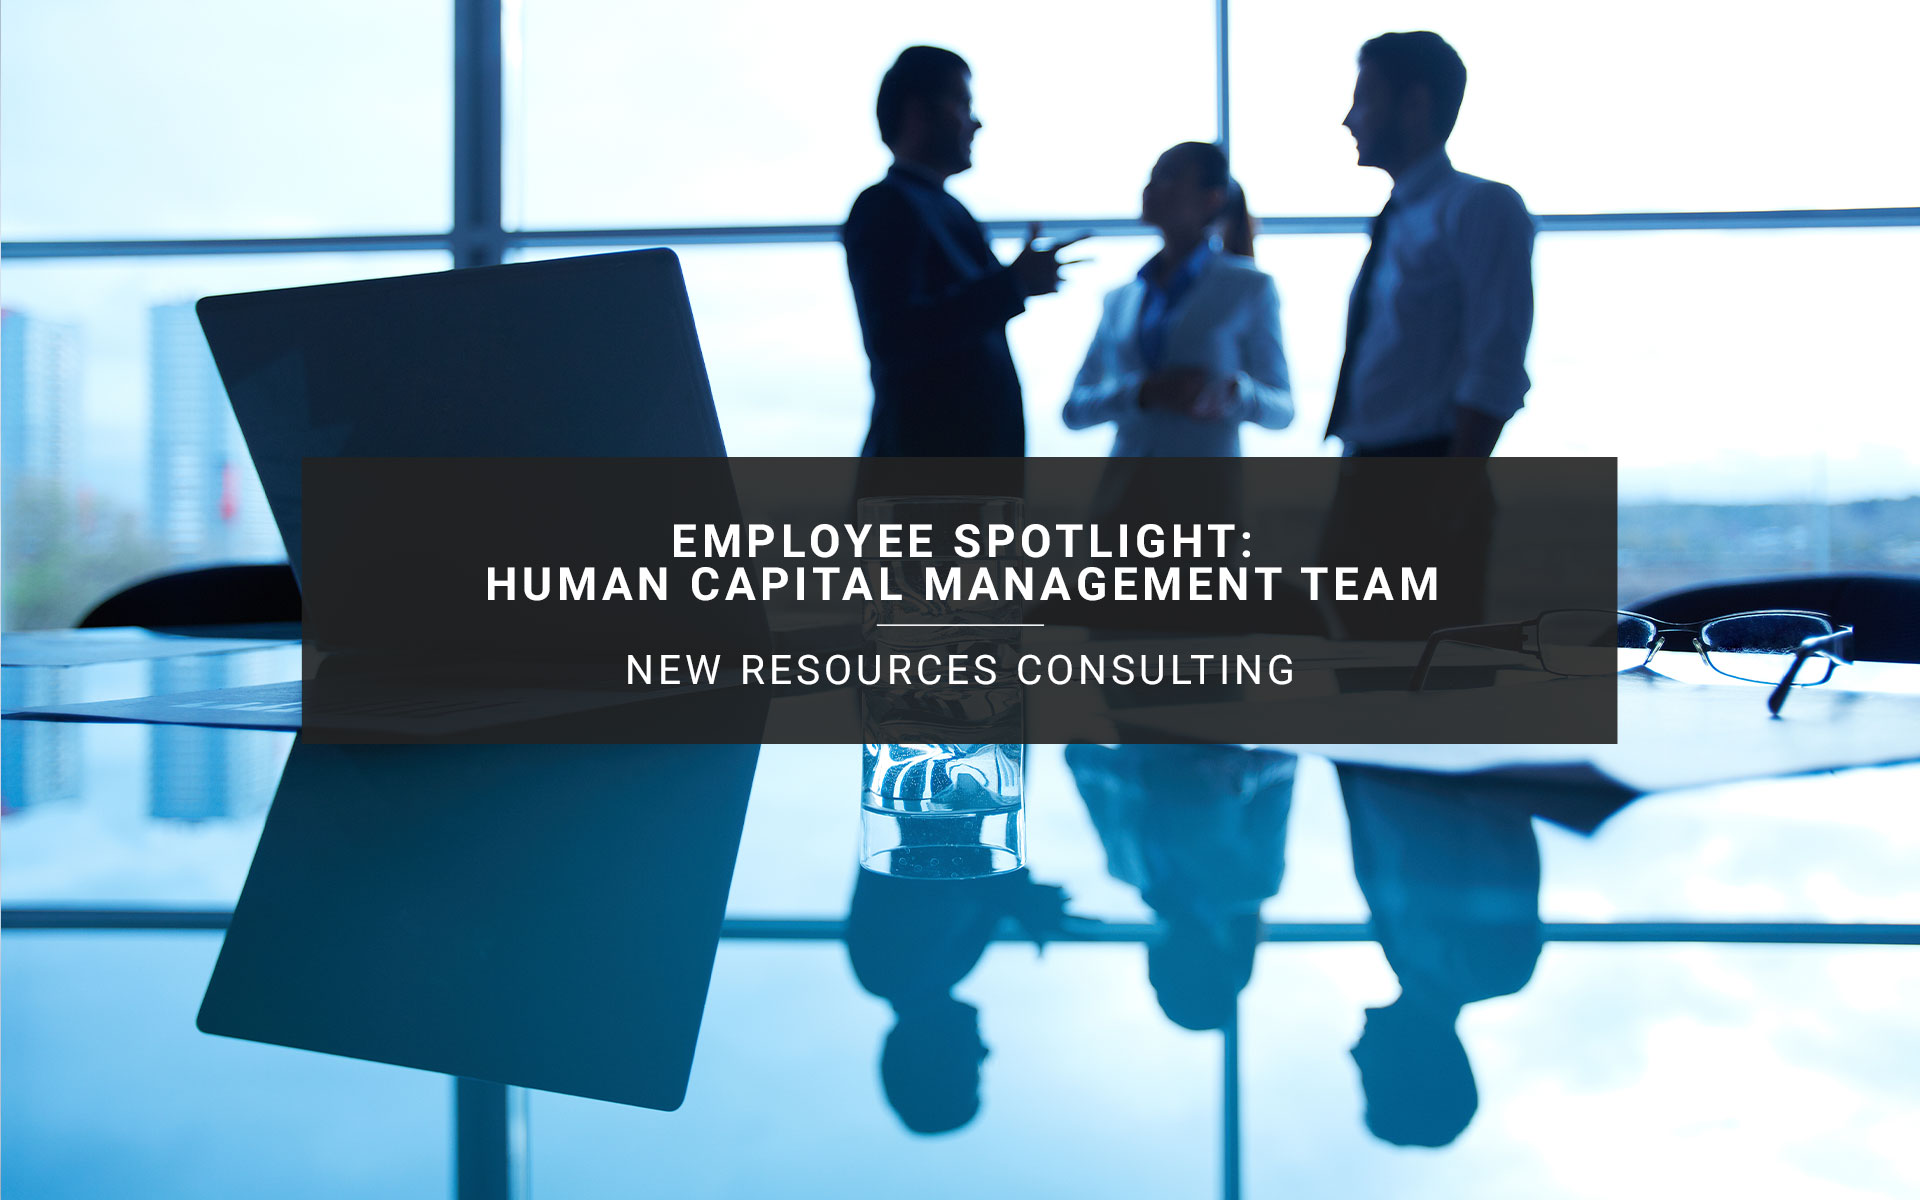 Human Capital Management Team | PeopleSoft Managed Services | Oracle | Managed Services | Tech Support | New Resources Consulting